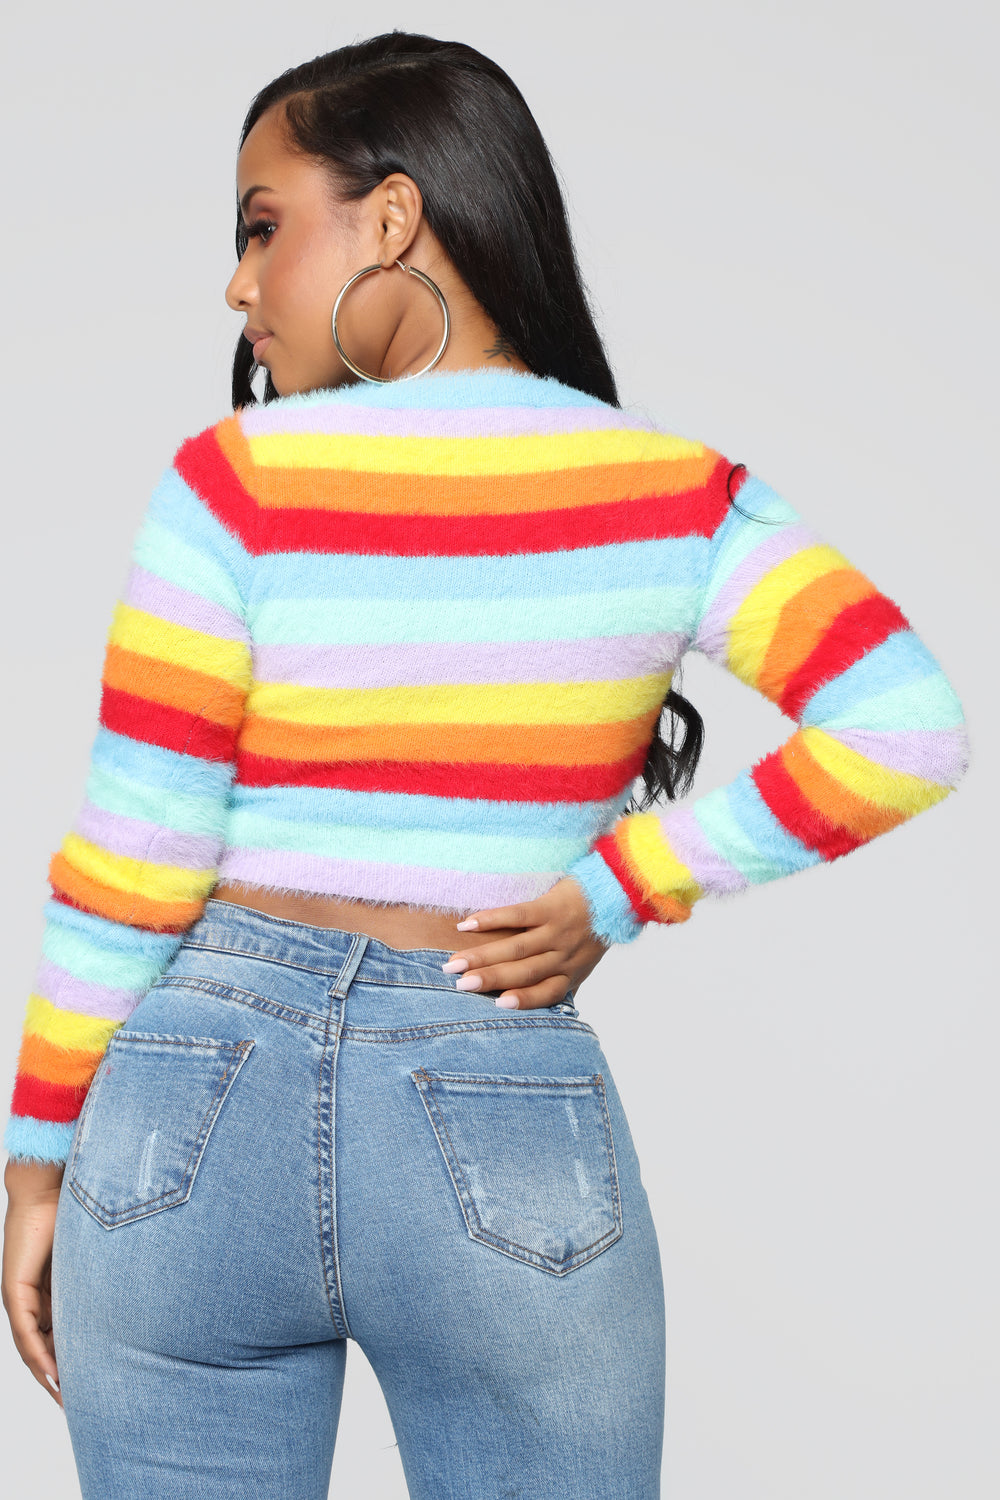 Feeling Colorful Fuzzy Sweater - Rainbow